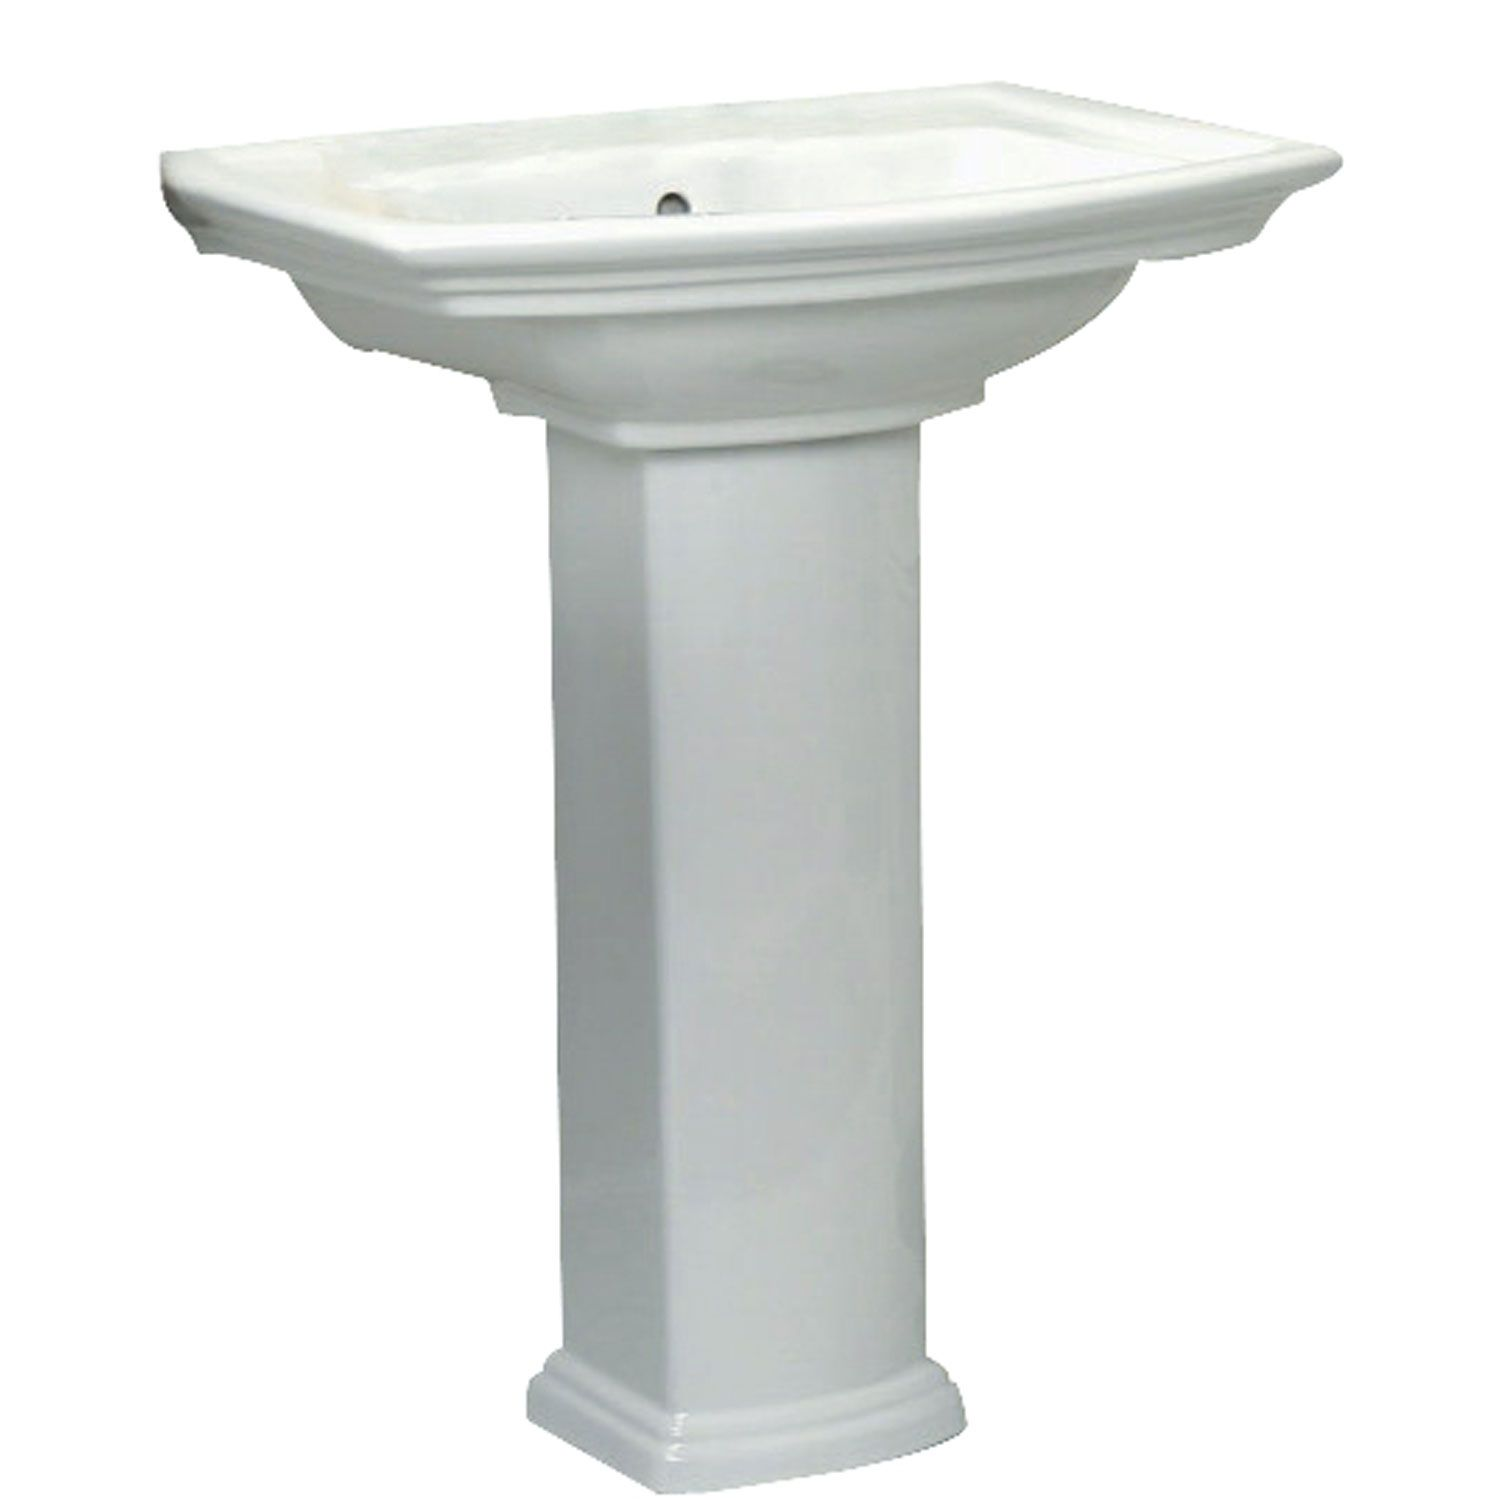 Barclay Products Washington White 550 Pedestal Sink 8 Inch